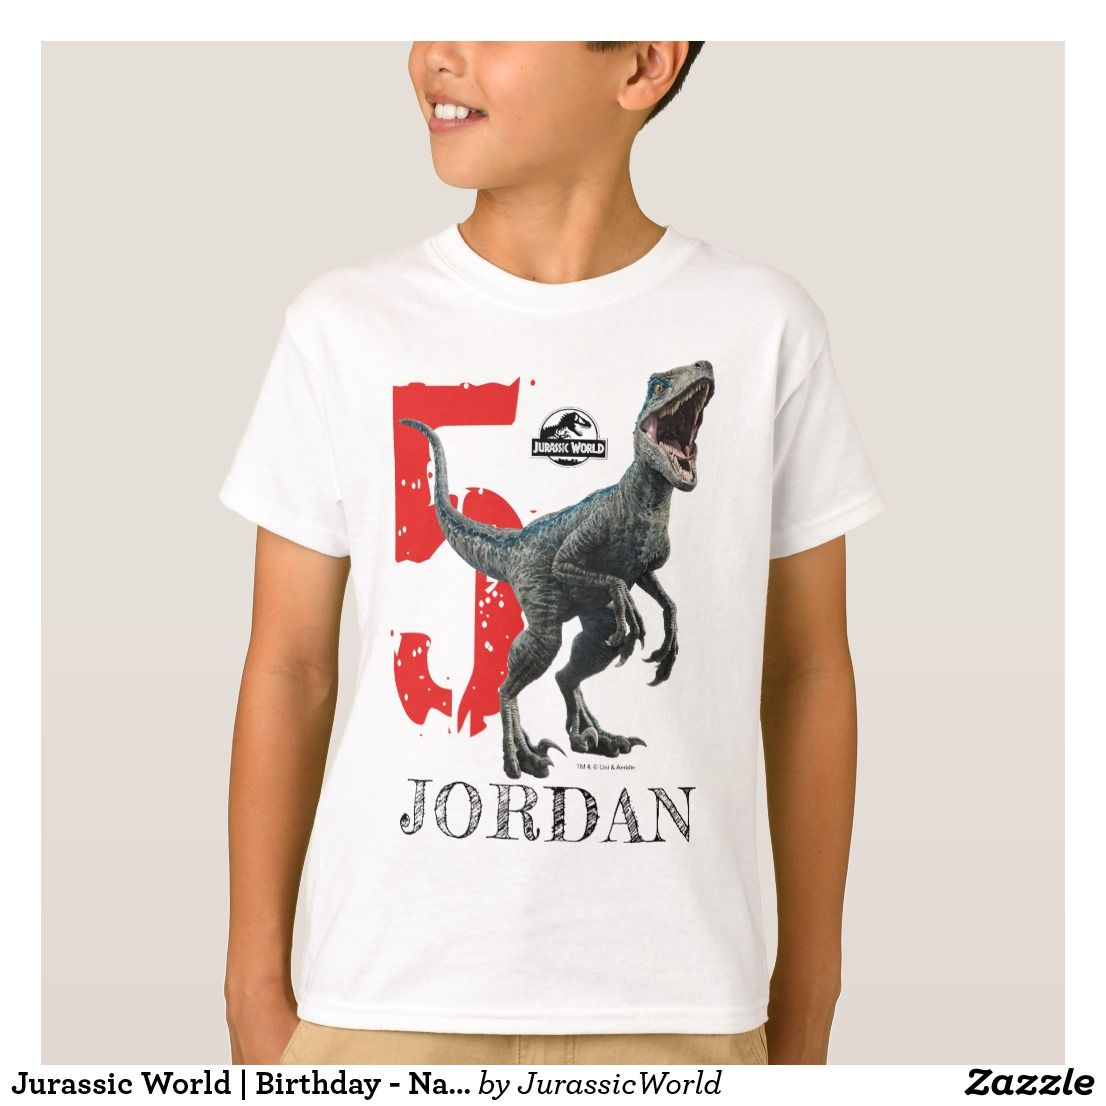 07c69e35 Jurassic World   Birthday - Name & Age T-Shirt.Personalize this Jurassic  World Birthday shirt with your child's name and age. #ad